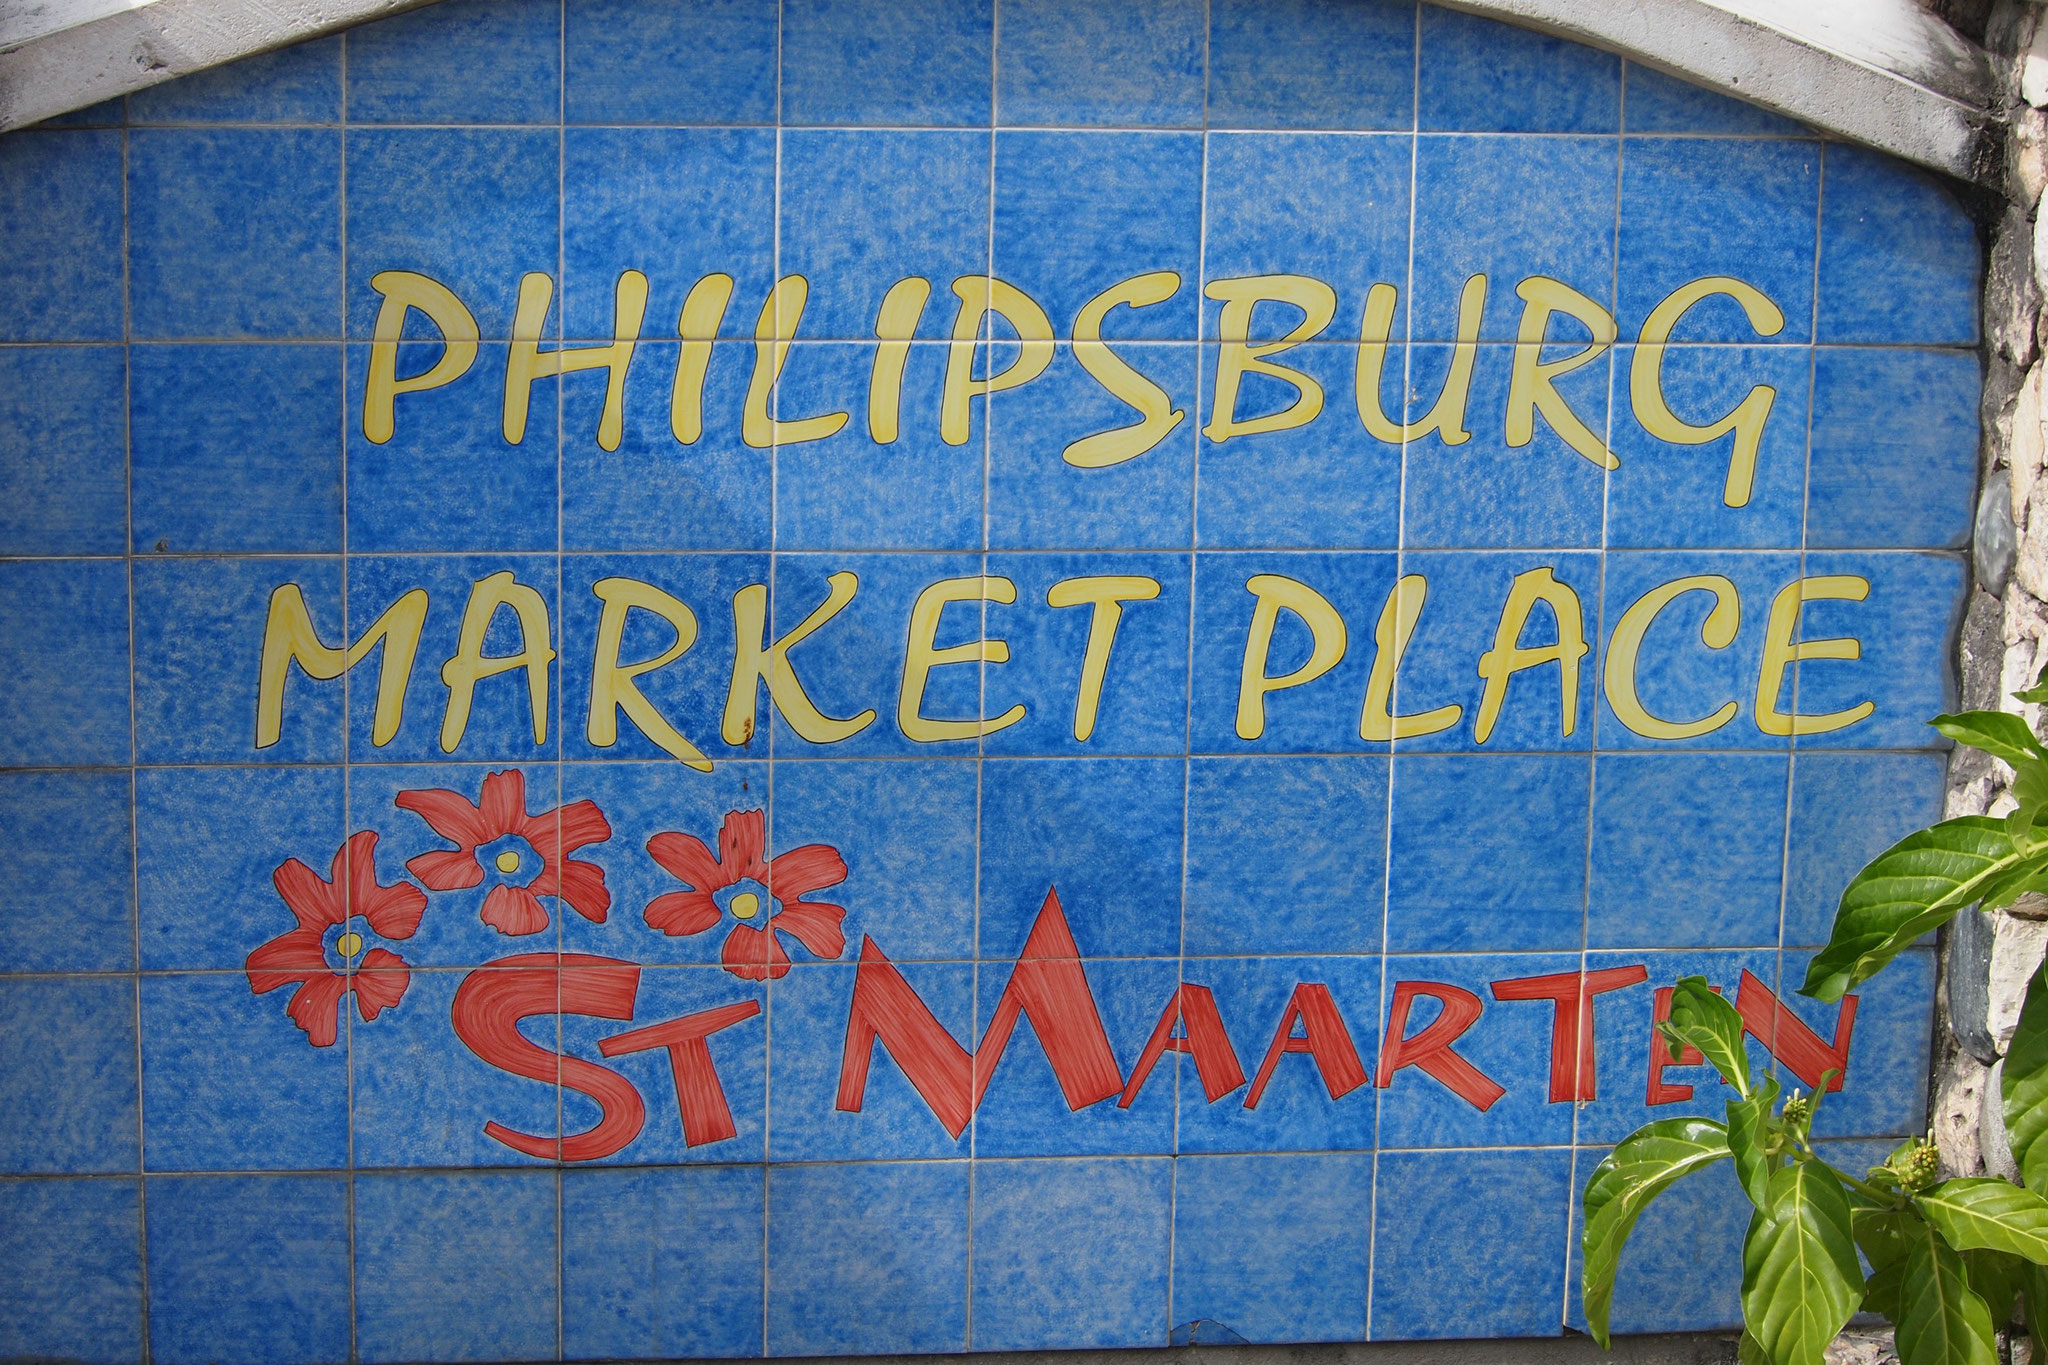 Shop at the Philipsburg Market luxurious duty free shop